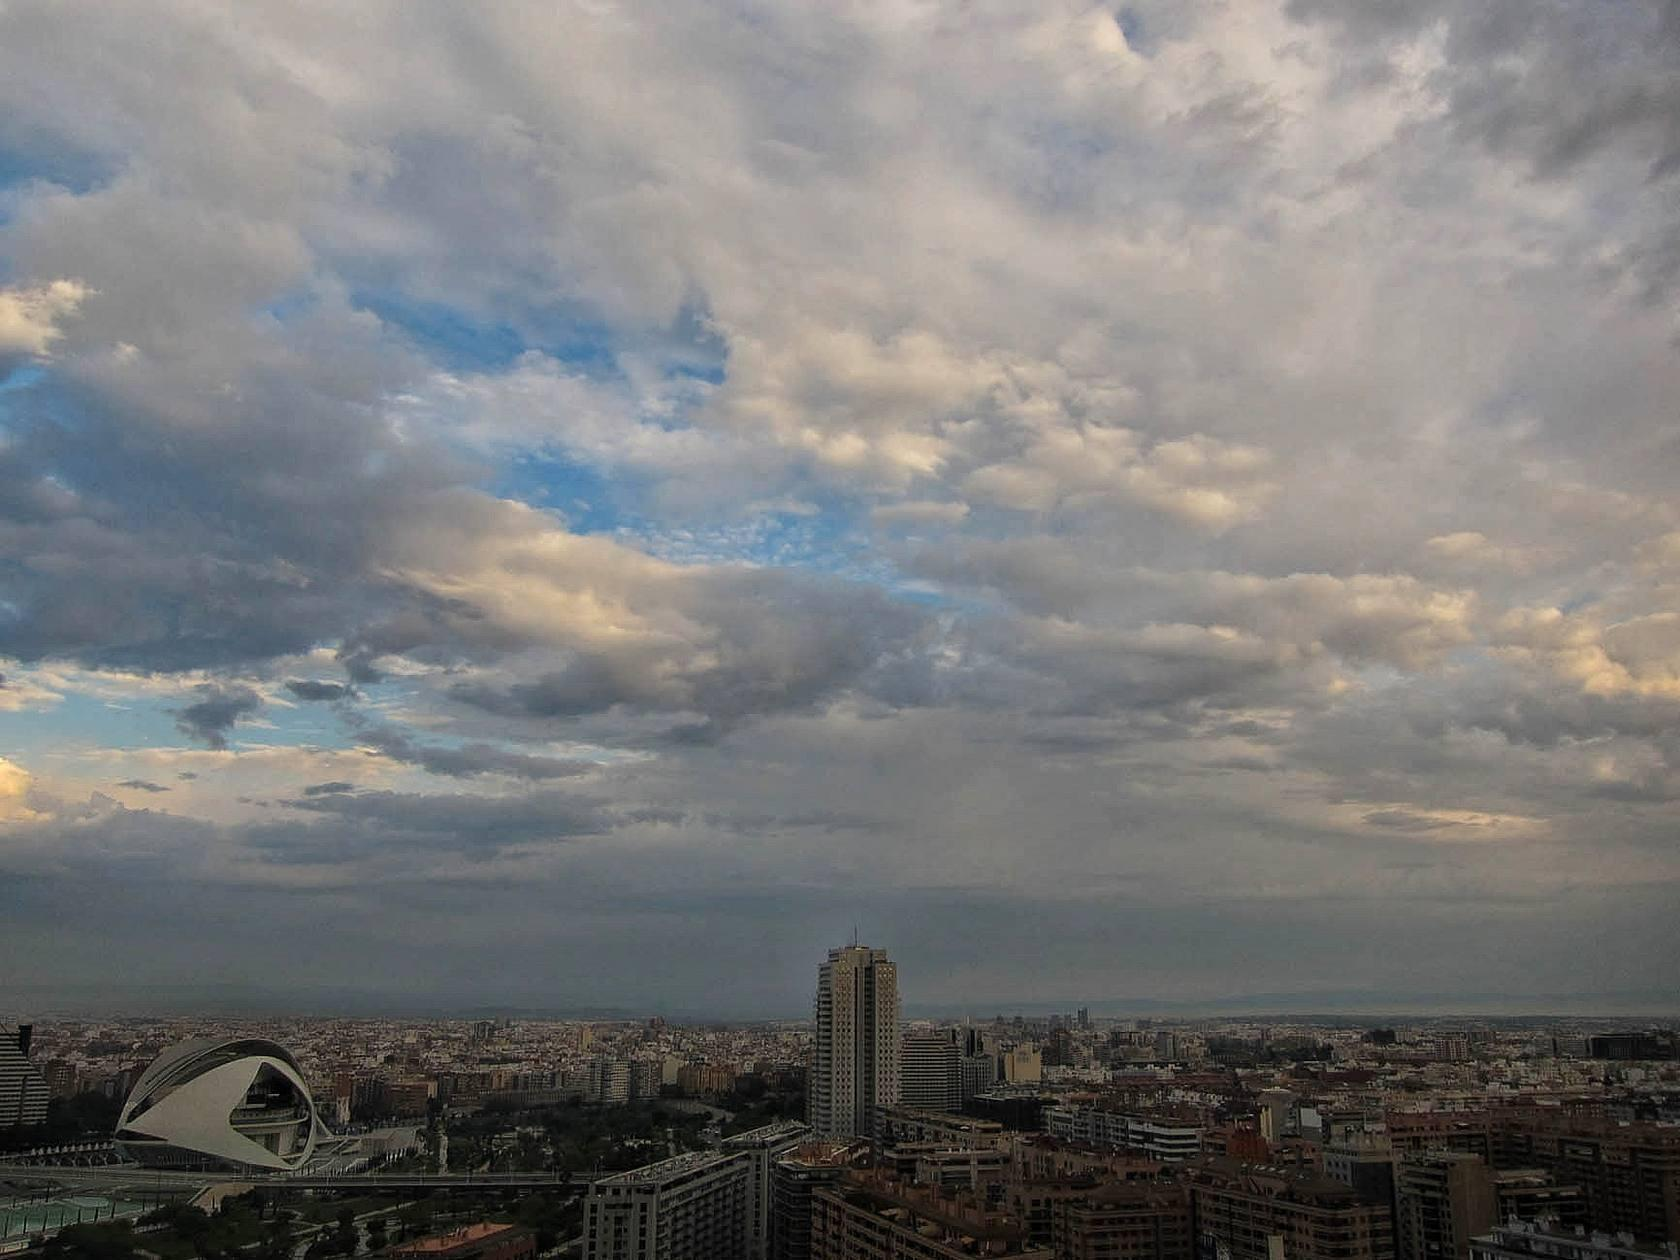 Amanecer en Valencia nublado y con previsi&oacute;n de lluvia (mi&eacute;rcoles 15 de mayo de 2013)